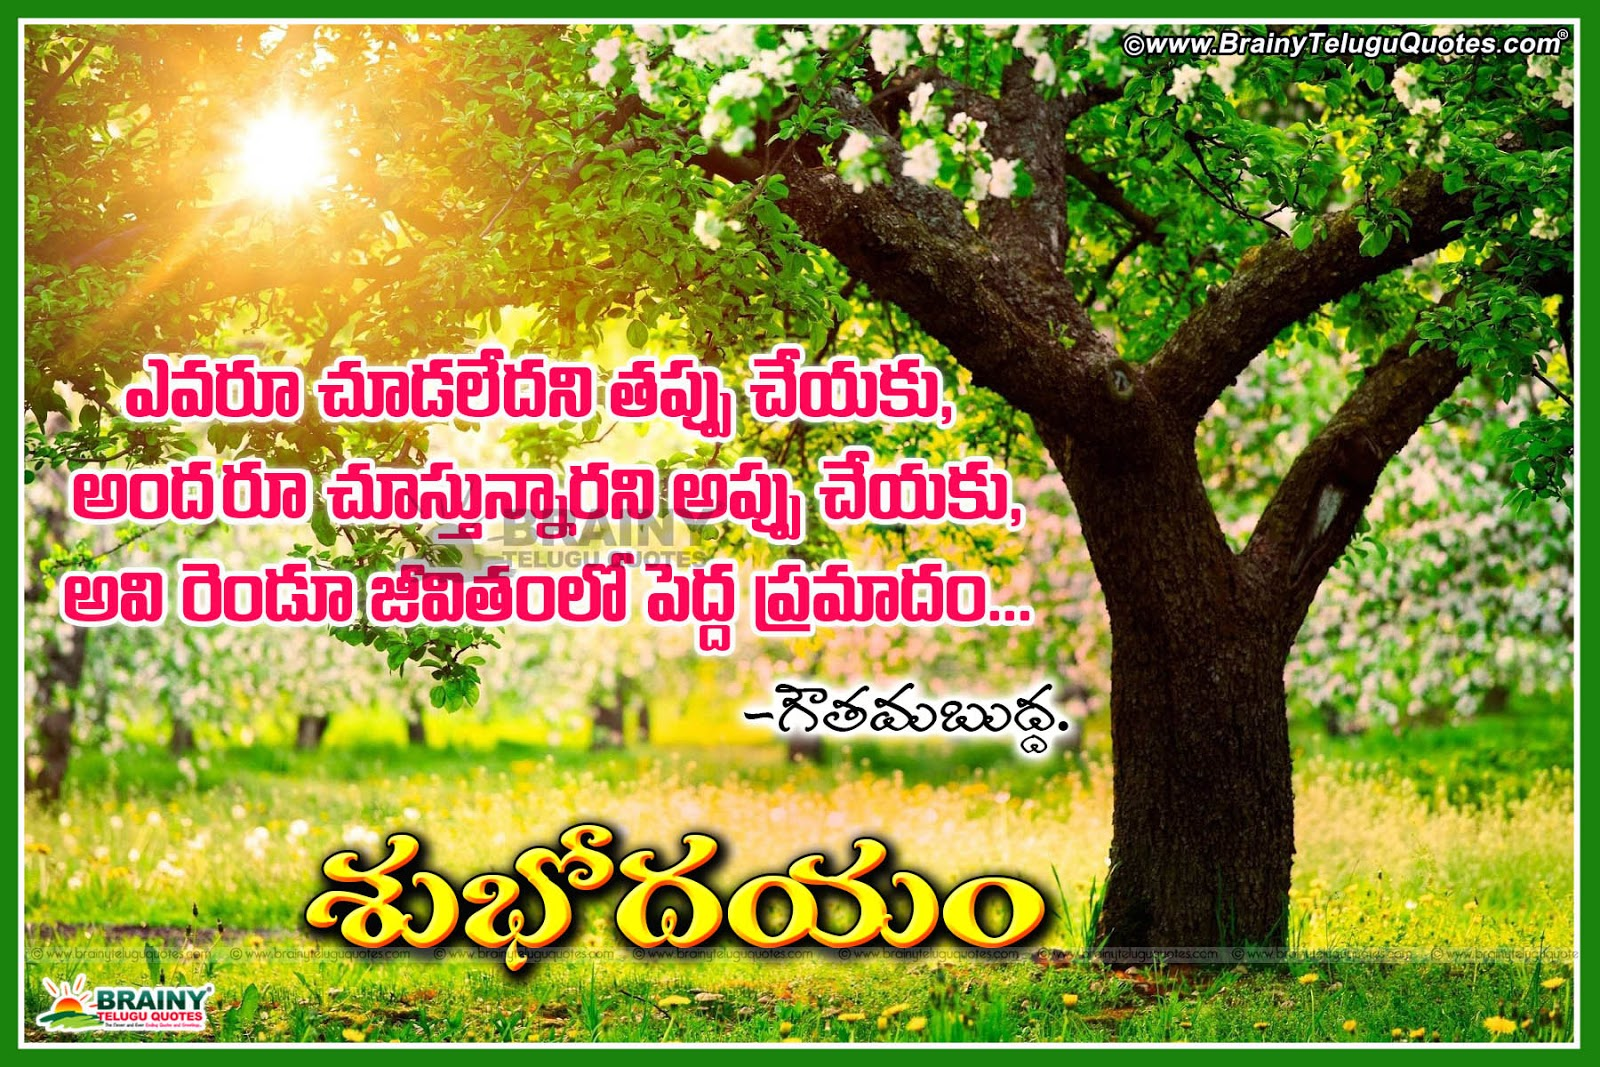 The 50 Best Good Morning Quotes Of All Time: Subhodayam Images Telugu Good Morning 3D Wallpapers